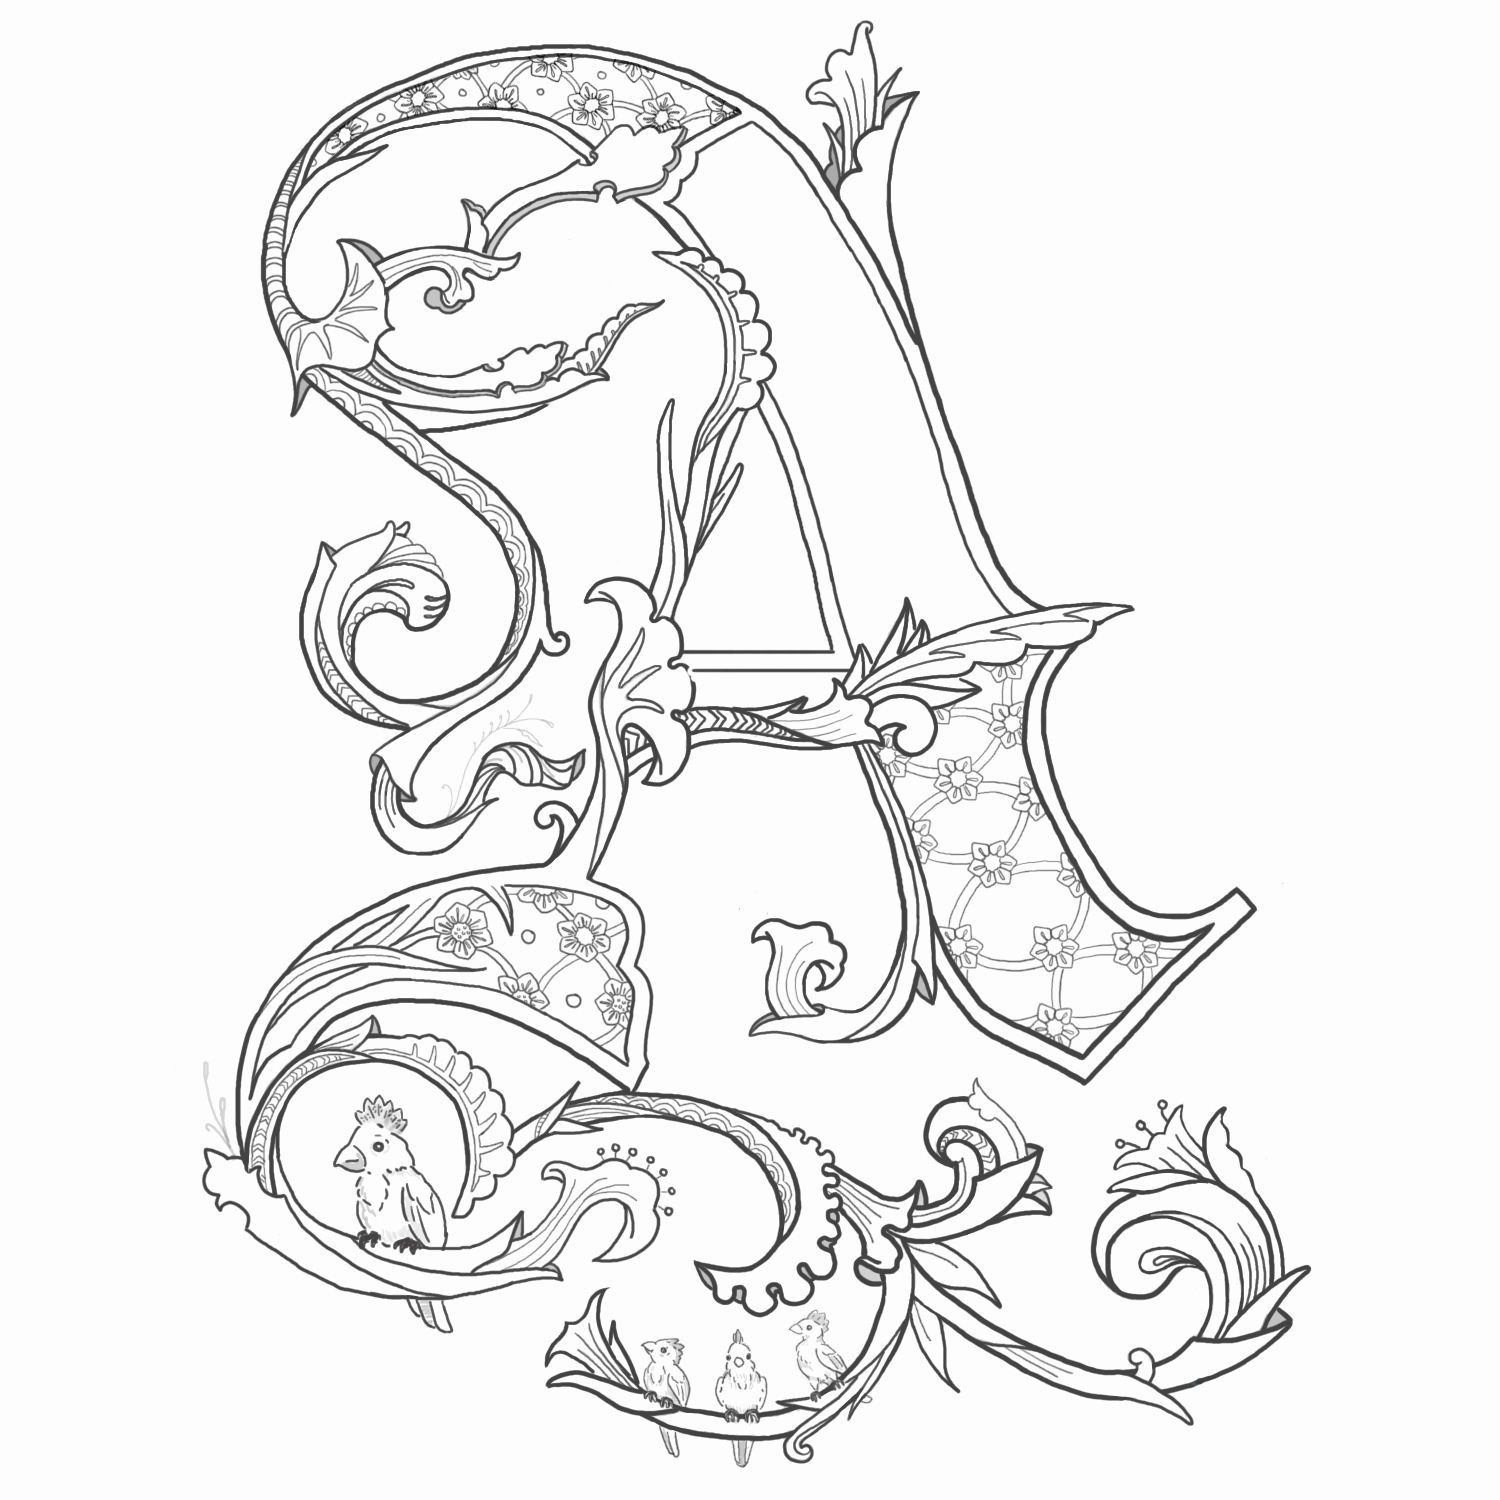 Printable Alphabet Coloring Pages Elegant Alice Stanne Illuminated